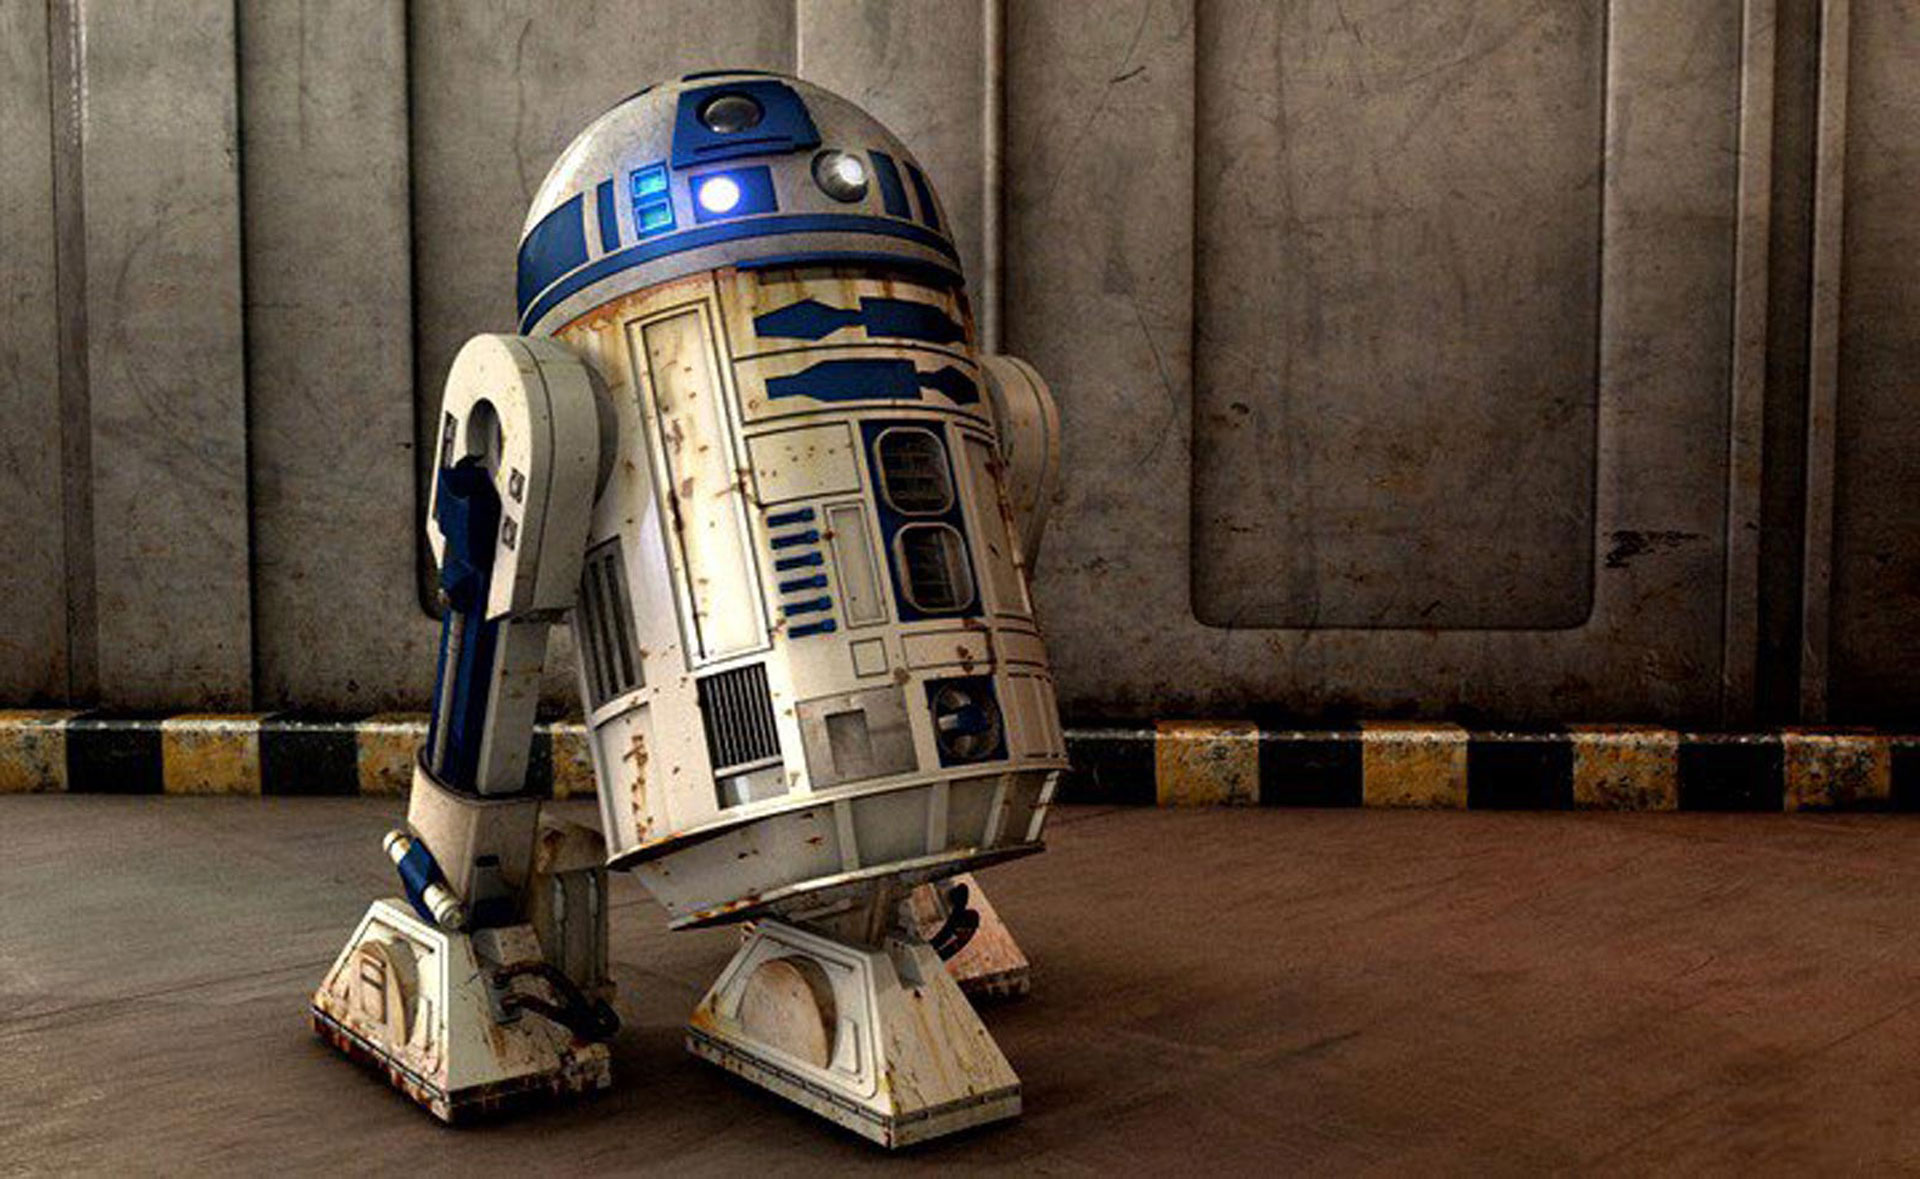 R2 D2 Wallpaper - WallpaperSafari